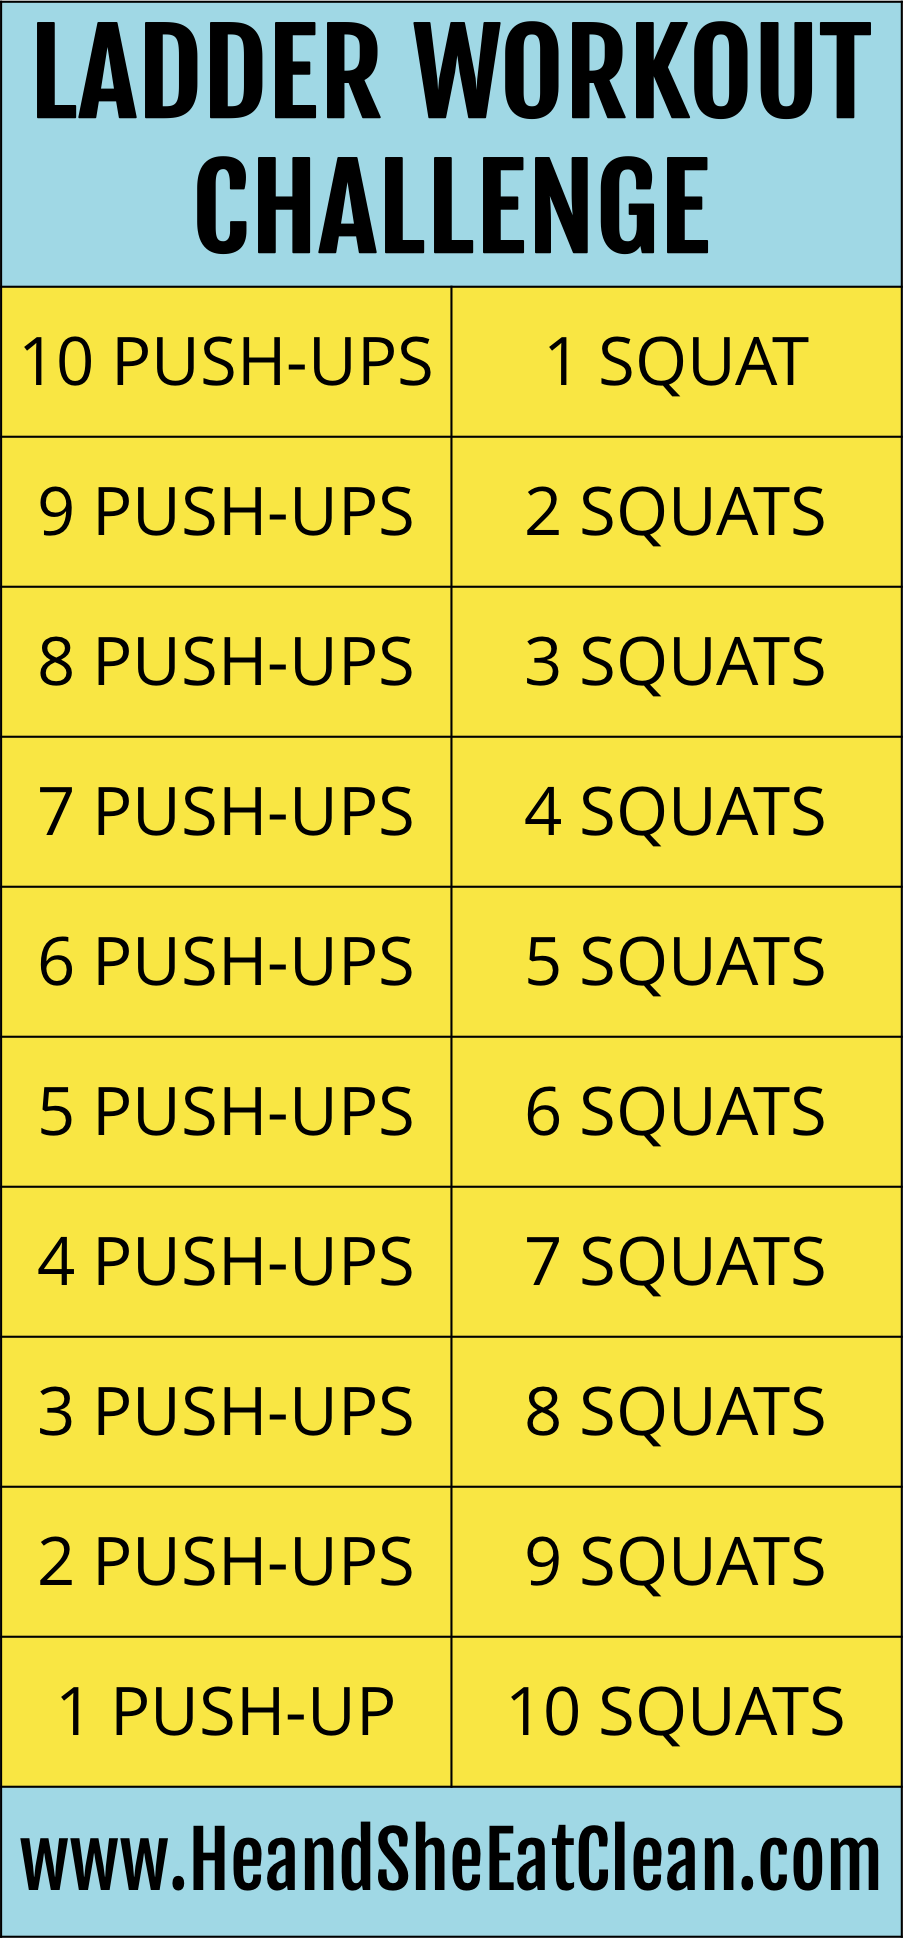 Ladder Workout Challenge: Push-Ups + Squats